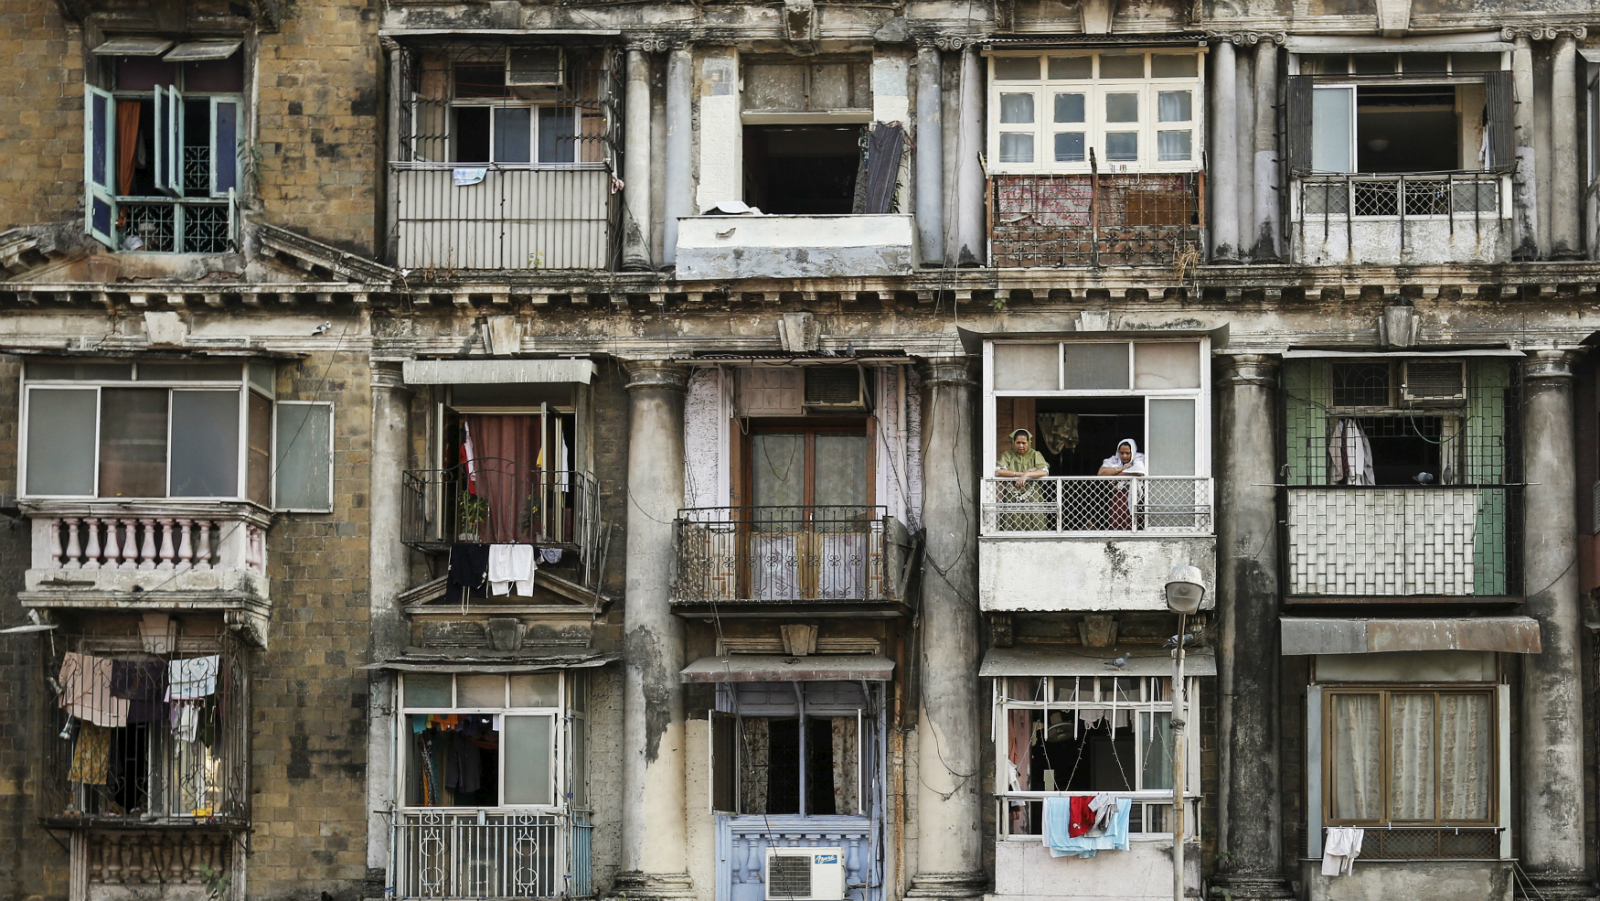 Residents look out of a window of an apartment in south Mumbai February 19, 2014. The cost for buying a 600 square feet (55 square meters) one-bedroom apartment in this building is around 14,166 Indian rupees ($225) per square feet or 8,500,000 Indian rupees ($136,000). The rent for an apartment in the same building is around 20,000 Indian rupees ($320) per month. REUTERS/Danish Siddiqui